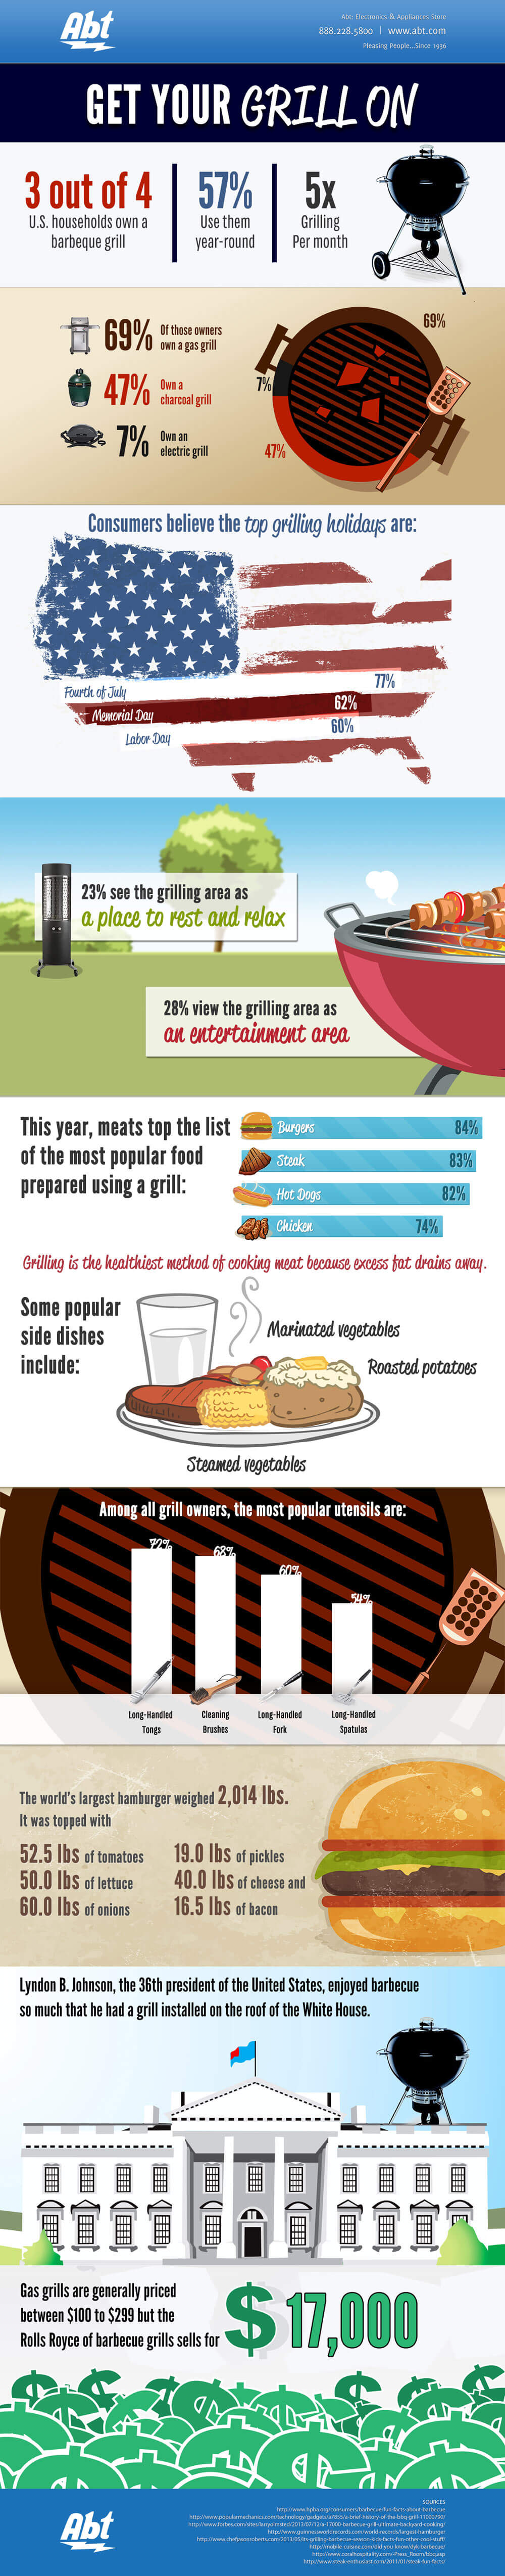 Abt's Get Your Grill On Infographic